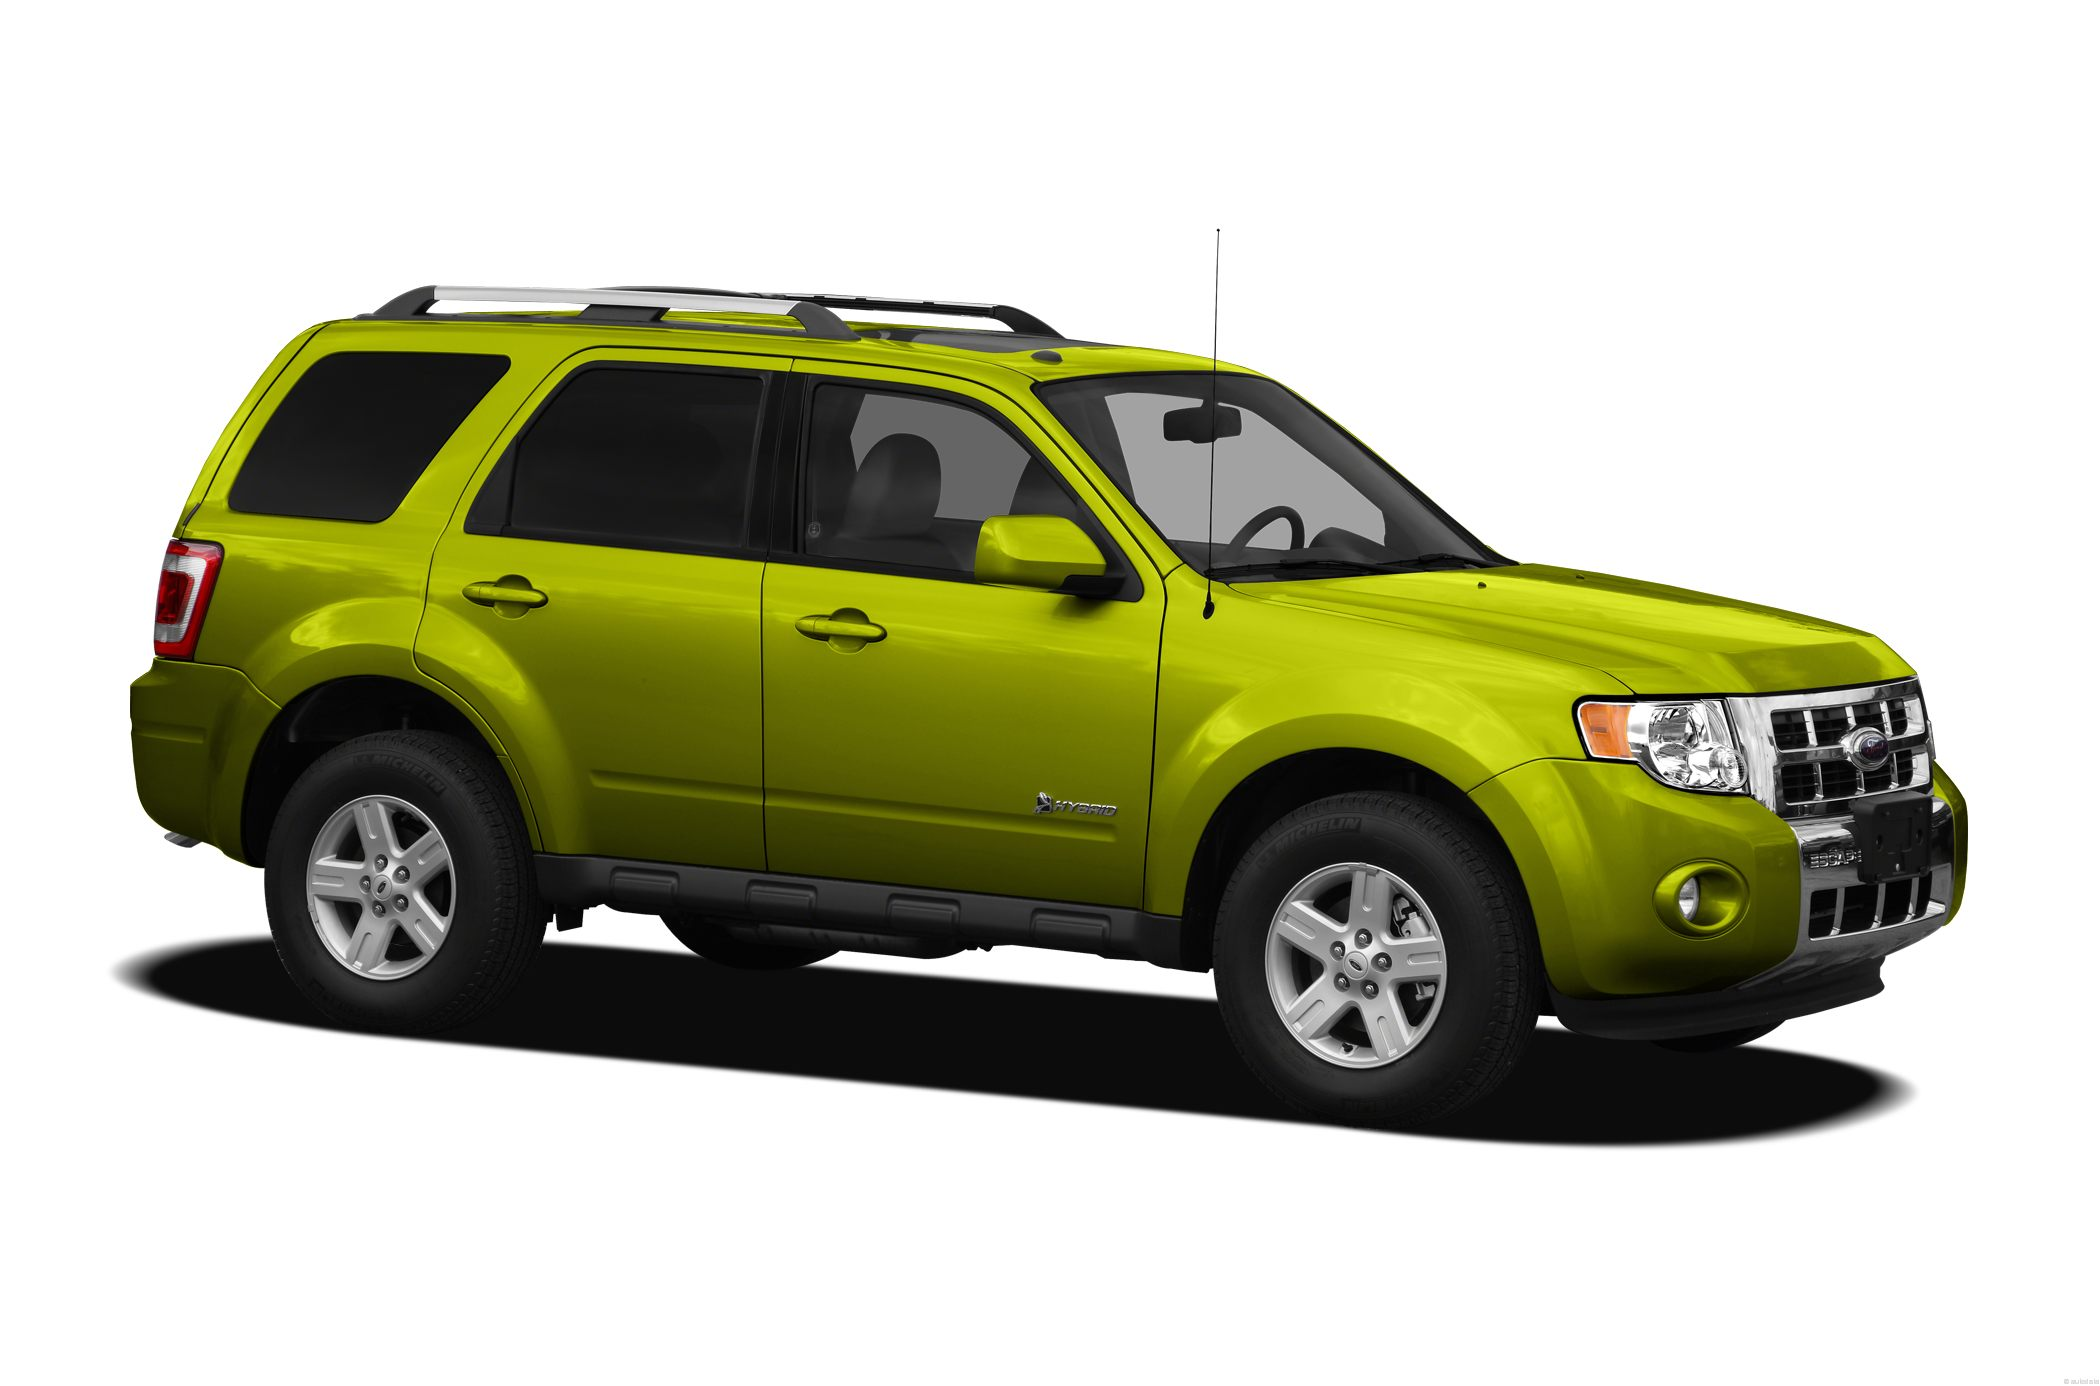 2012 Ford Escape Hybrid SUV Base 4dr Front wheel Drive Photo Free Download Image